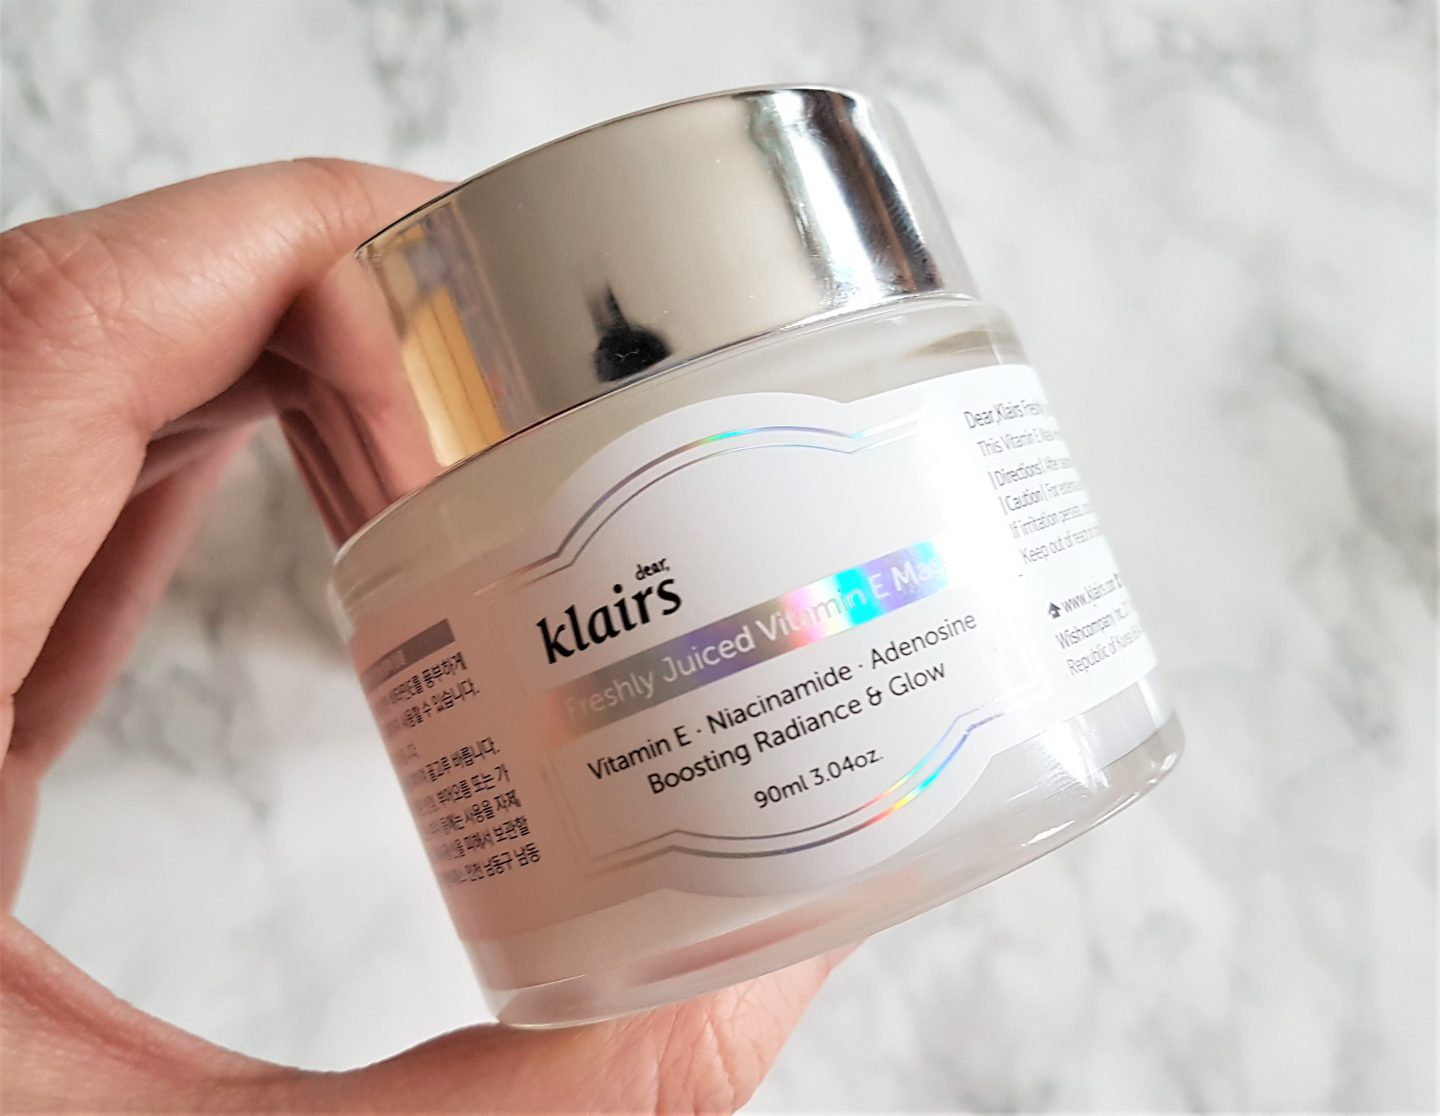 REVIEW: KLAIRS Freshly Juiced Vitamin E Mask